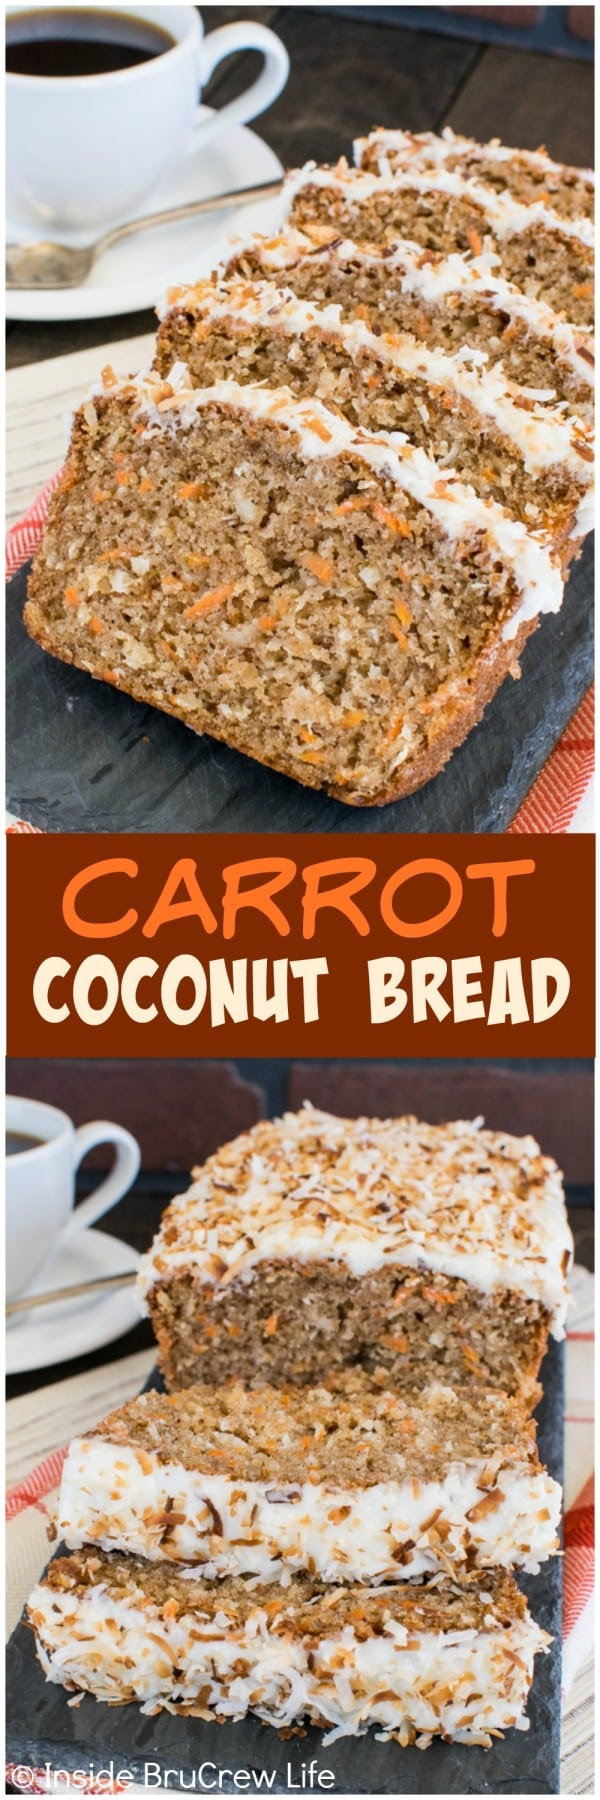 Carrot Coconut Bread - this sweet bread is loaded with plenty of carrots making it acceptable to eat cake for breakfast. Try this easy recipe for breakfast or brunch. #sweetbread #carrotcake #coconut #carrot #easter #breakfast